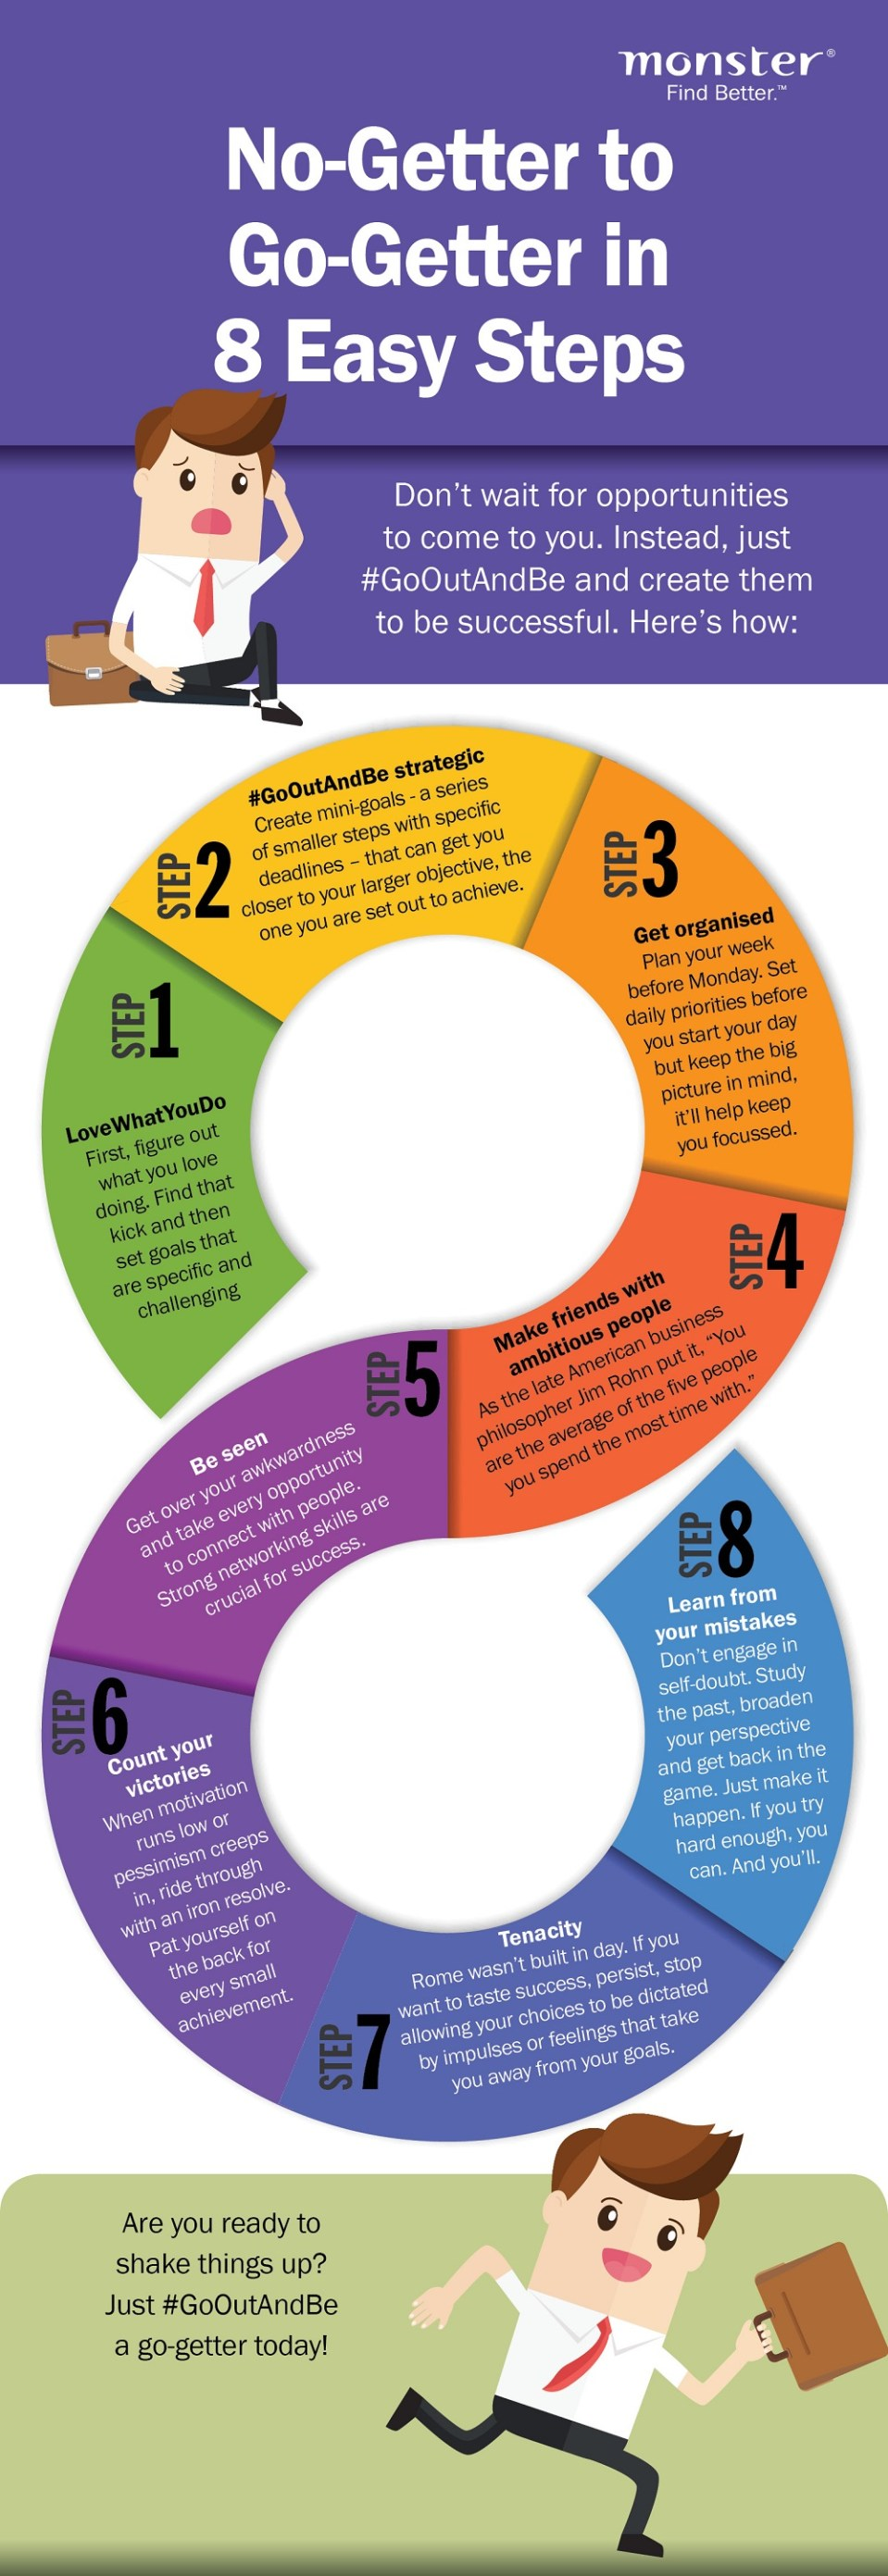 No-getter to go-getter in 8 easy steps [Infographic]